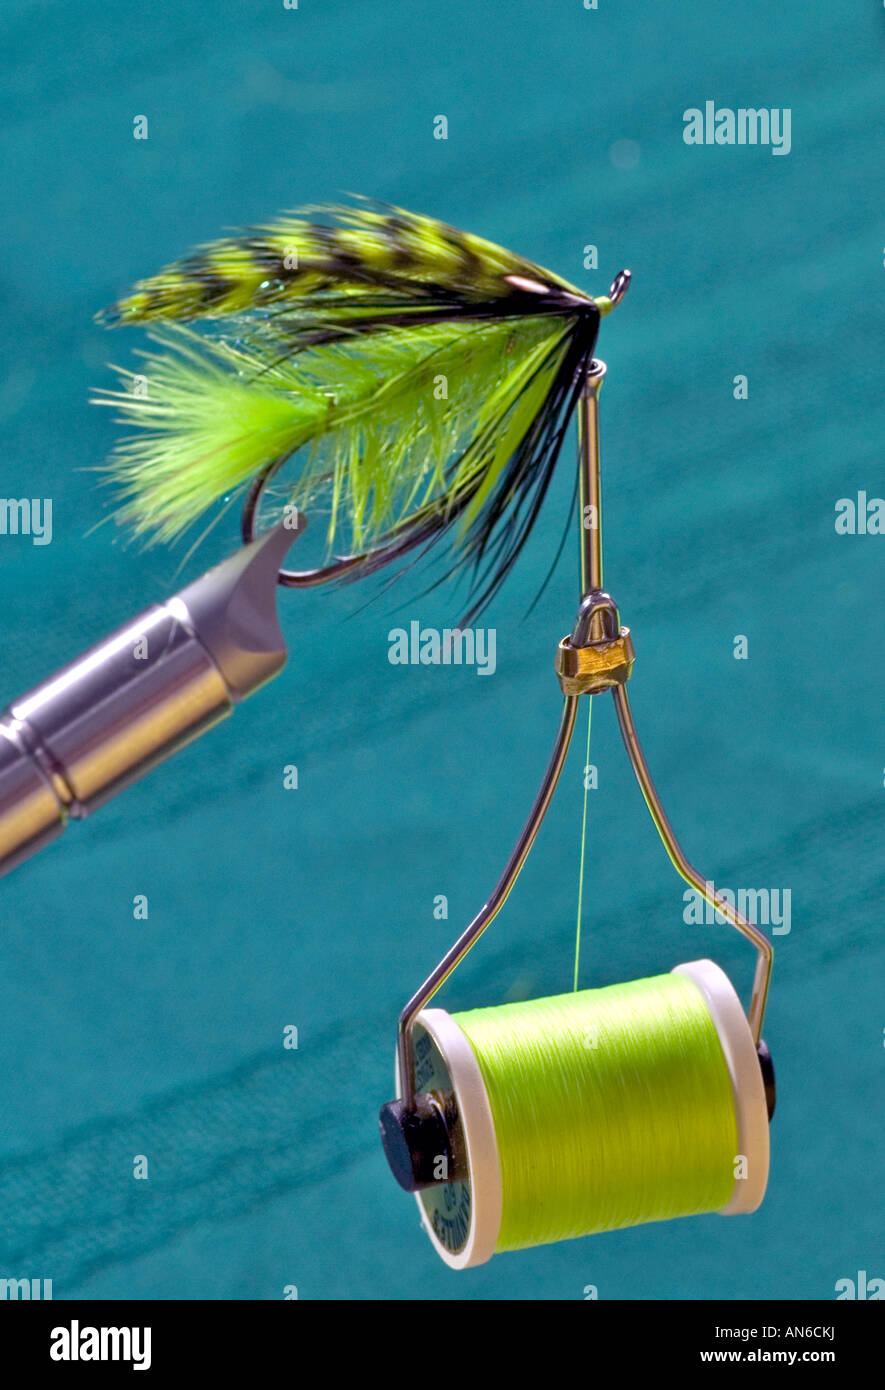 Metal instrument with spool of thread, close-up - Stock Image